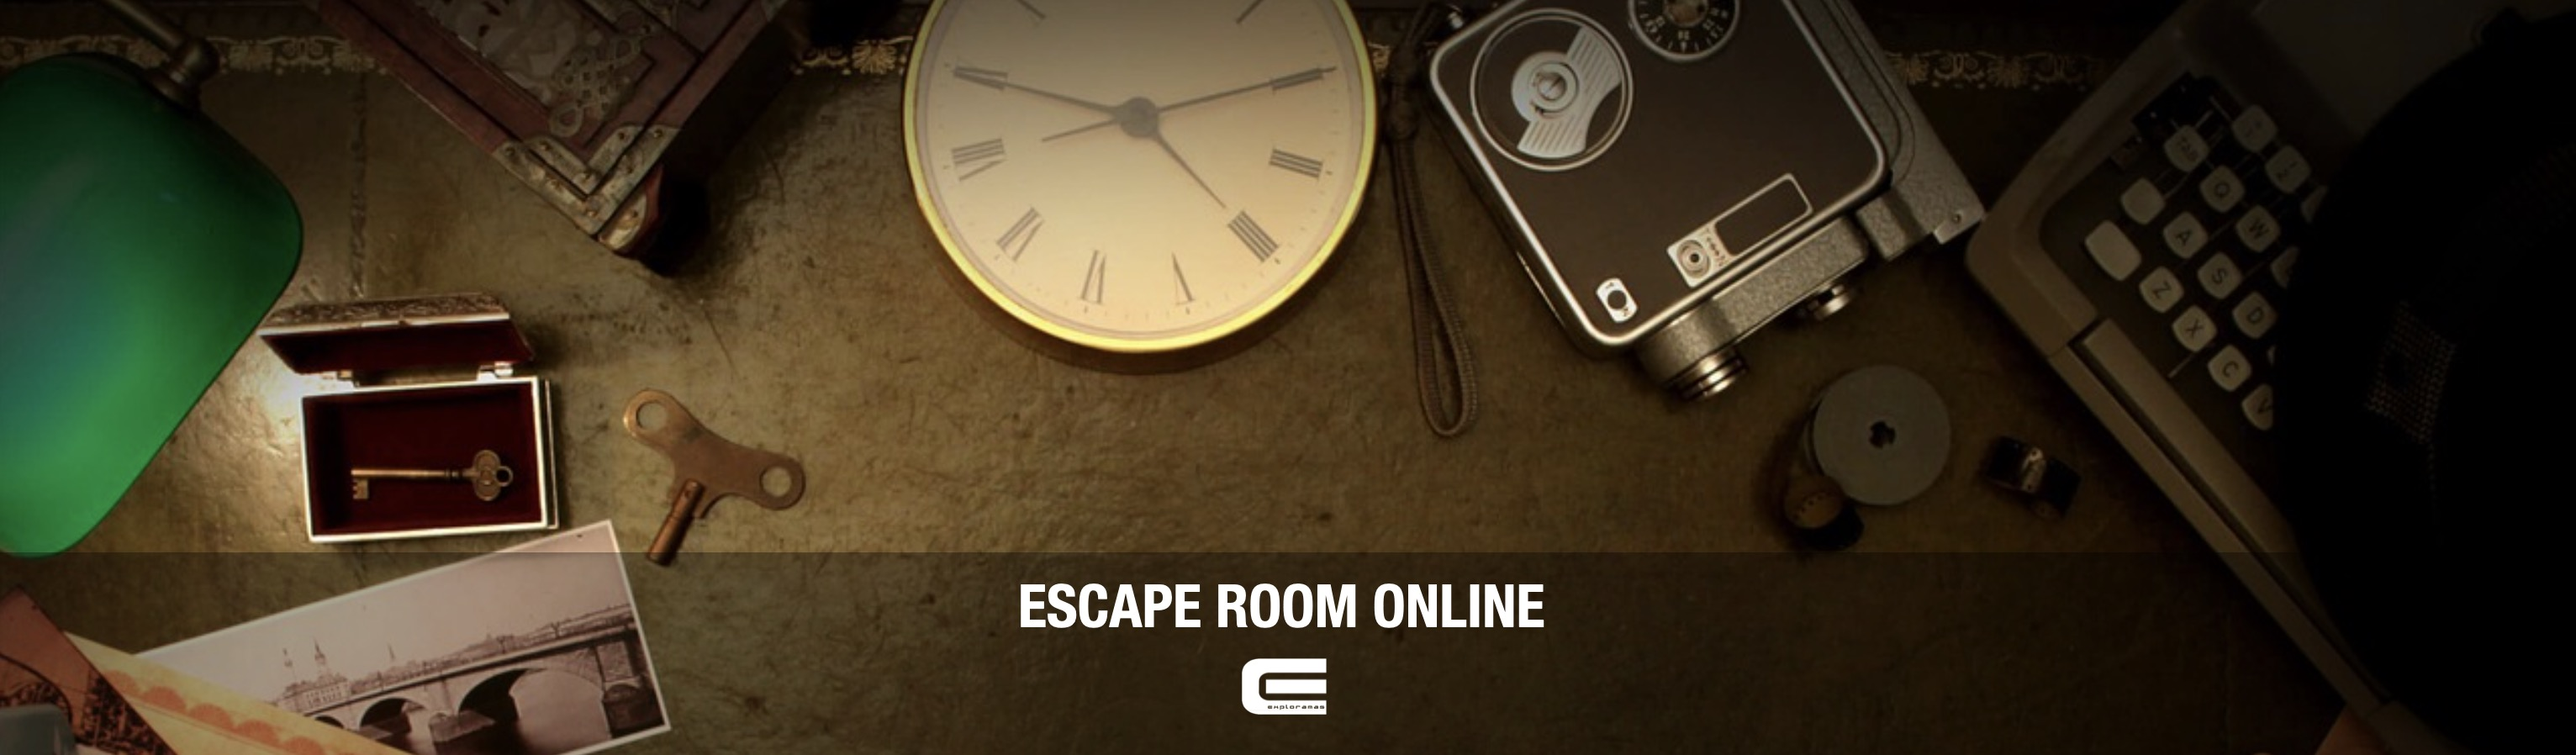 Un Escape Room Virtual diferente